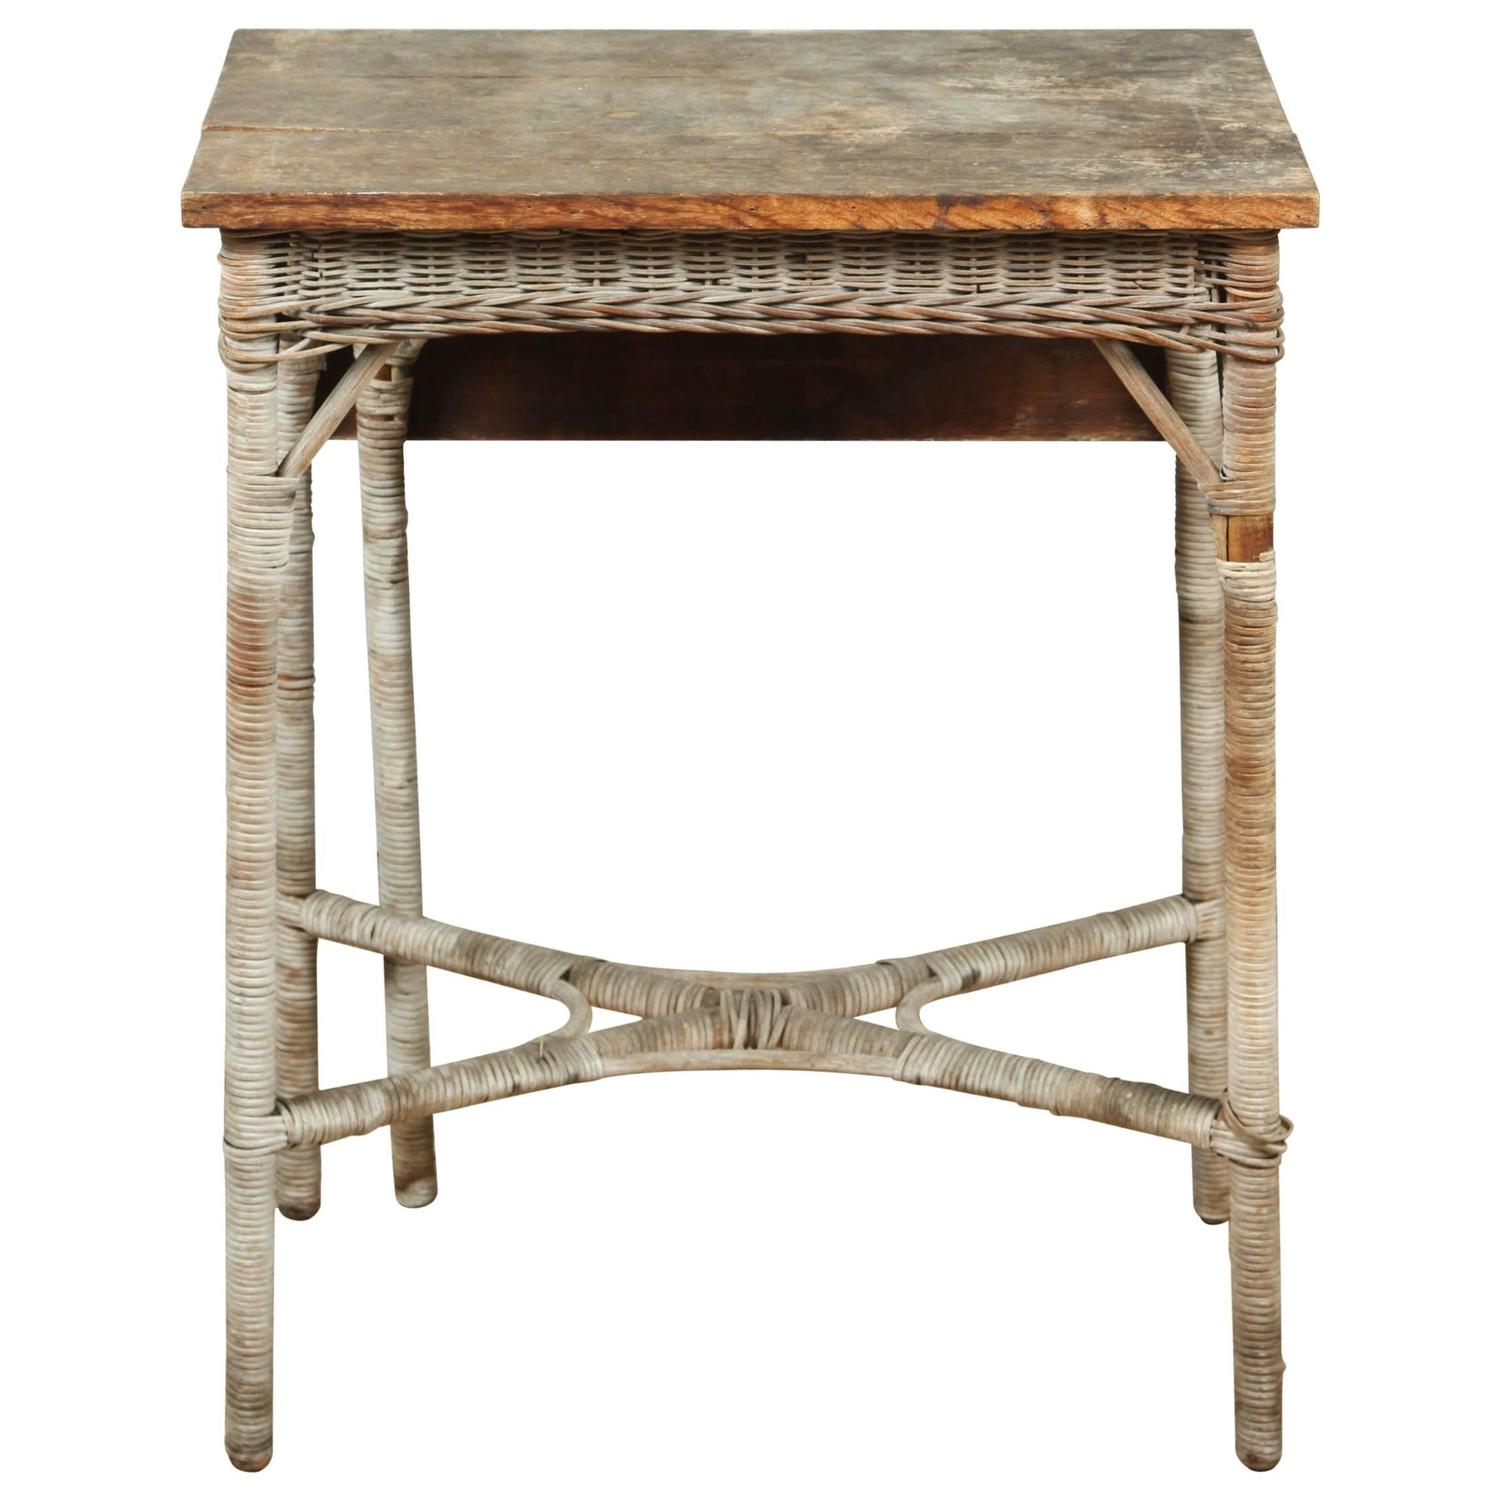 Vintage Wood And Wicker Small Gate Leg Table At 1stdibs